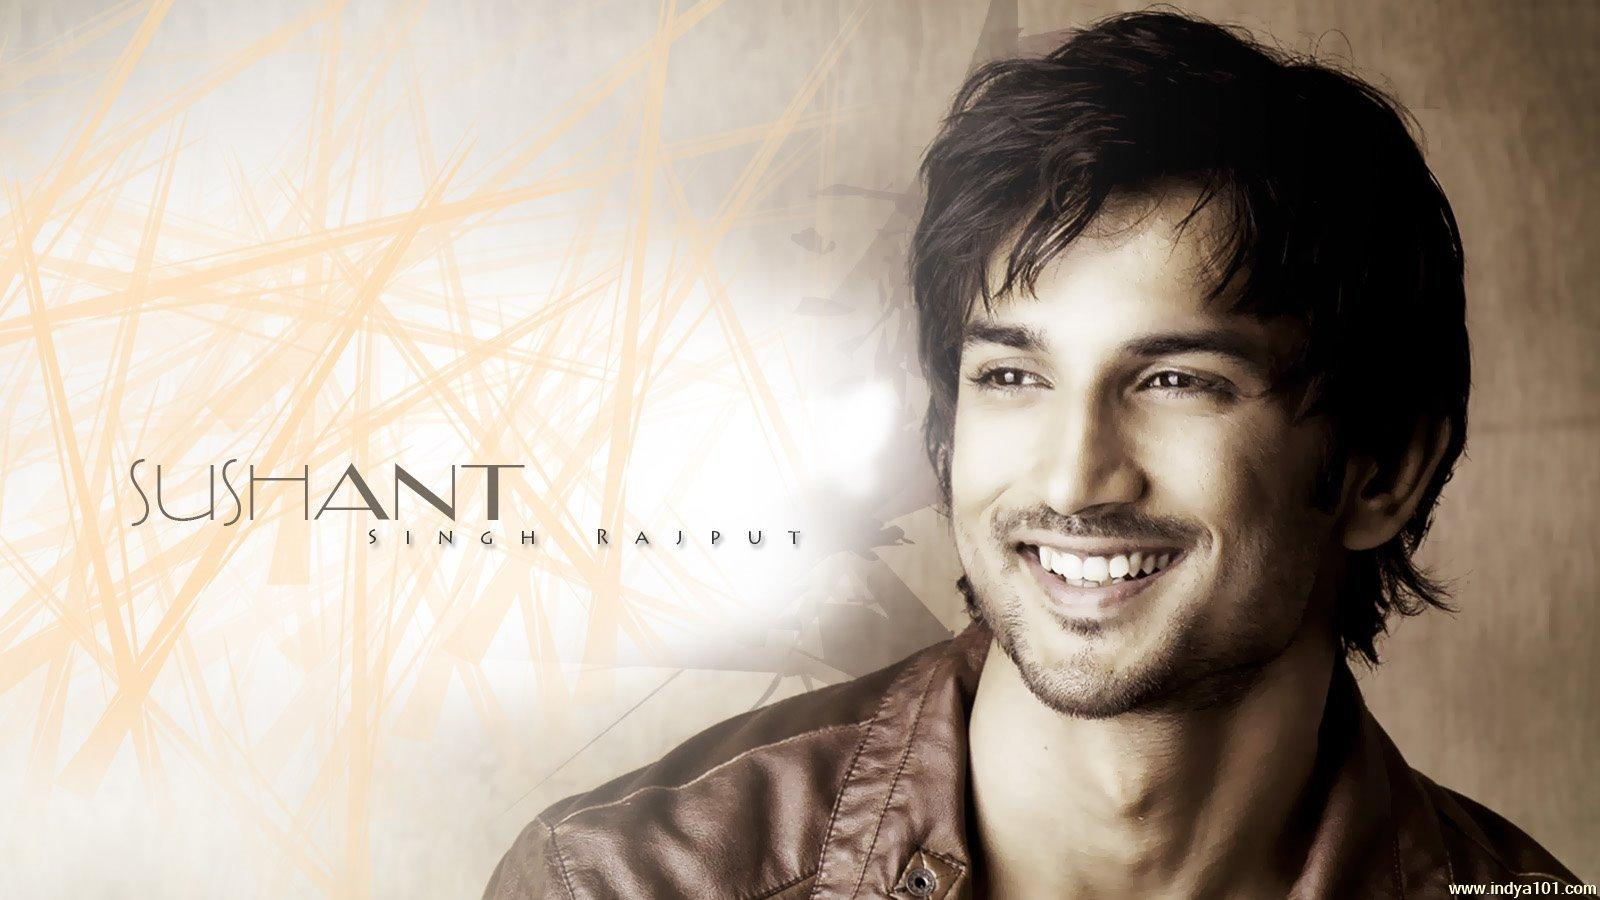 Sushant Singh Rajput Image, Photos, Pics & HD Wallpapers